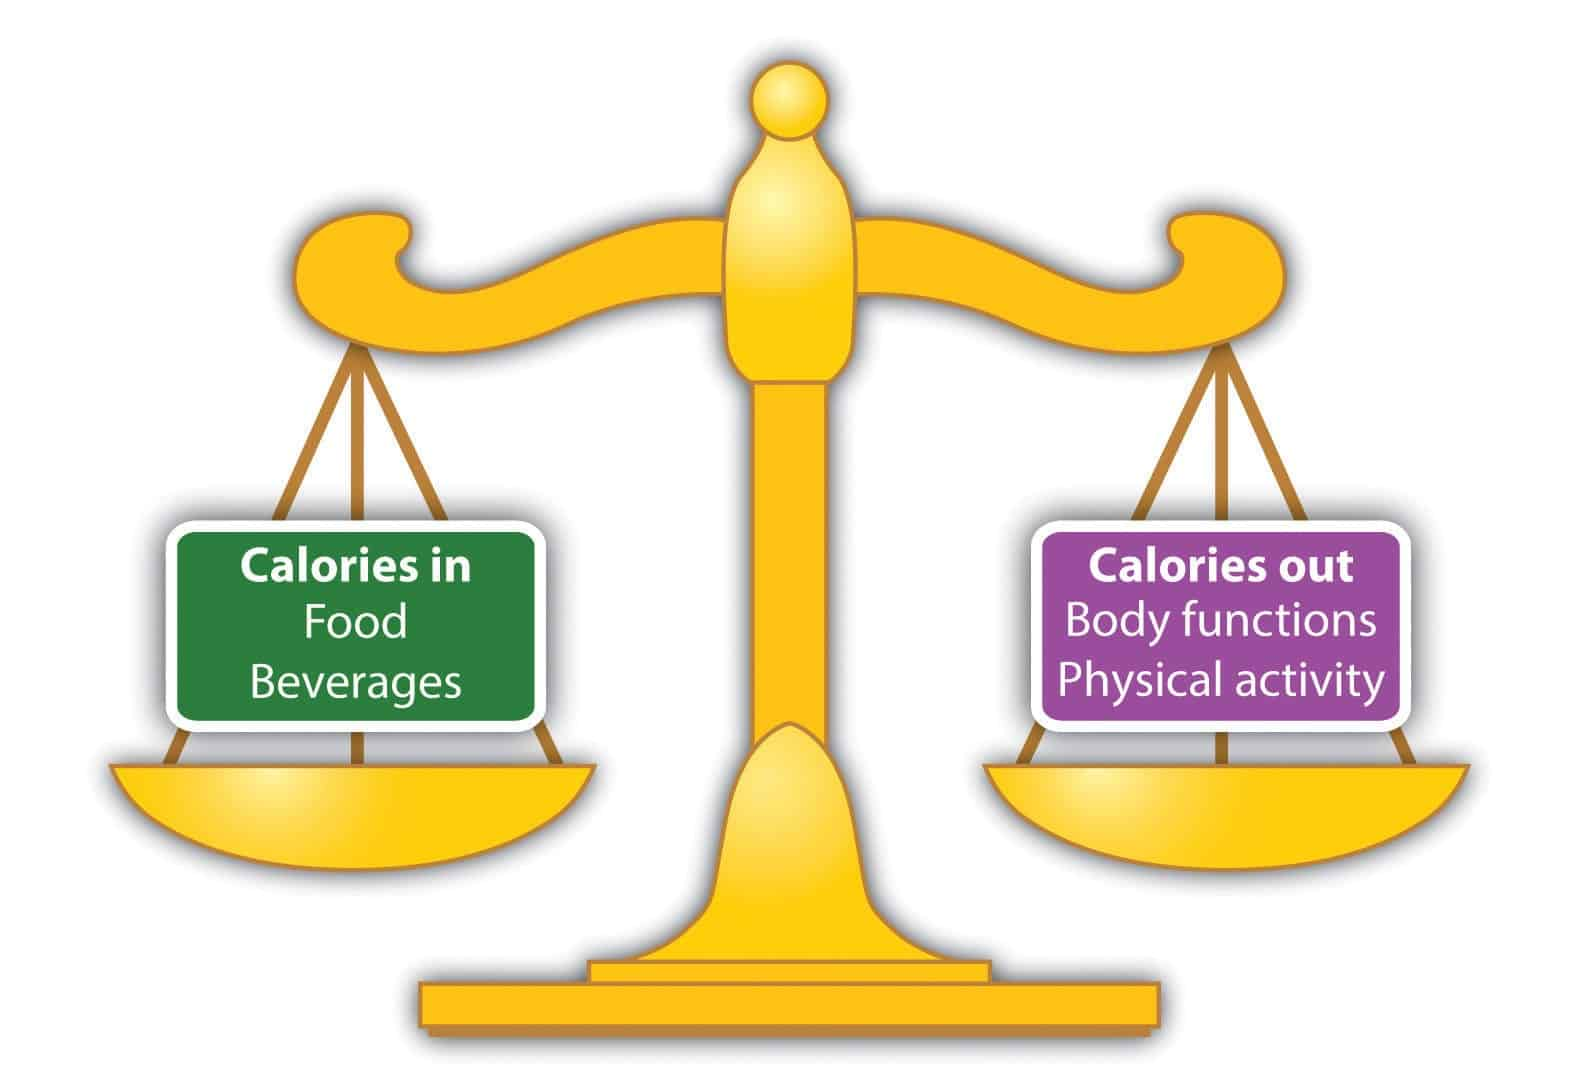 Calories In Calories Out Scale